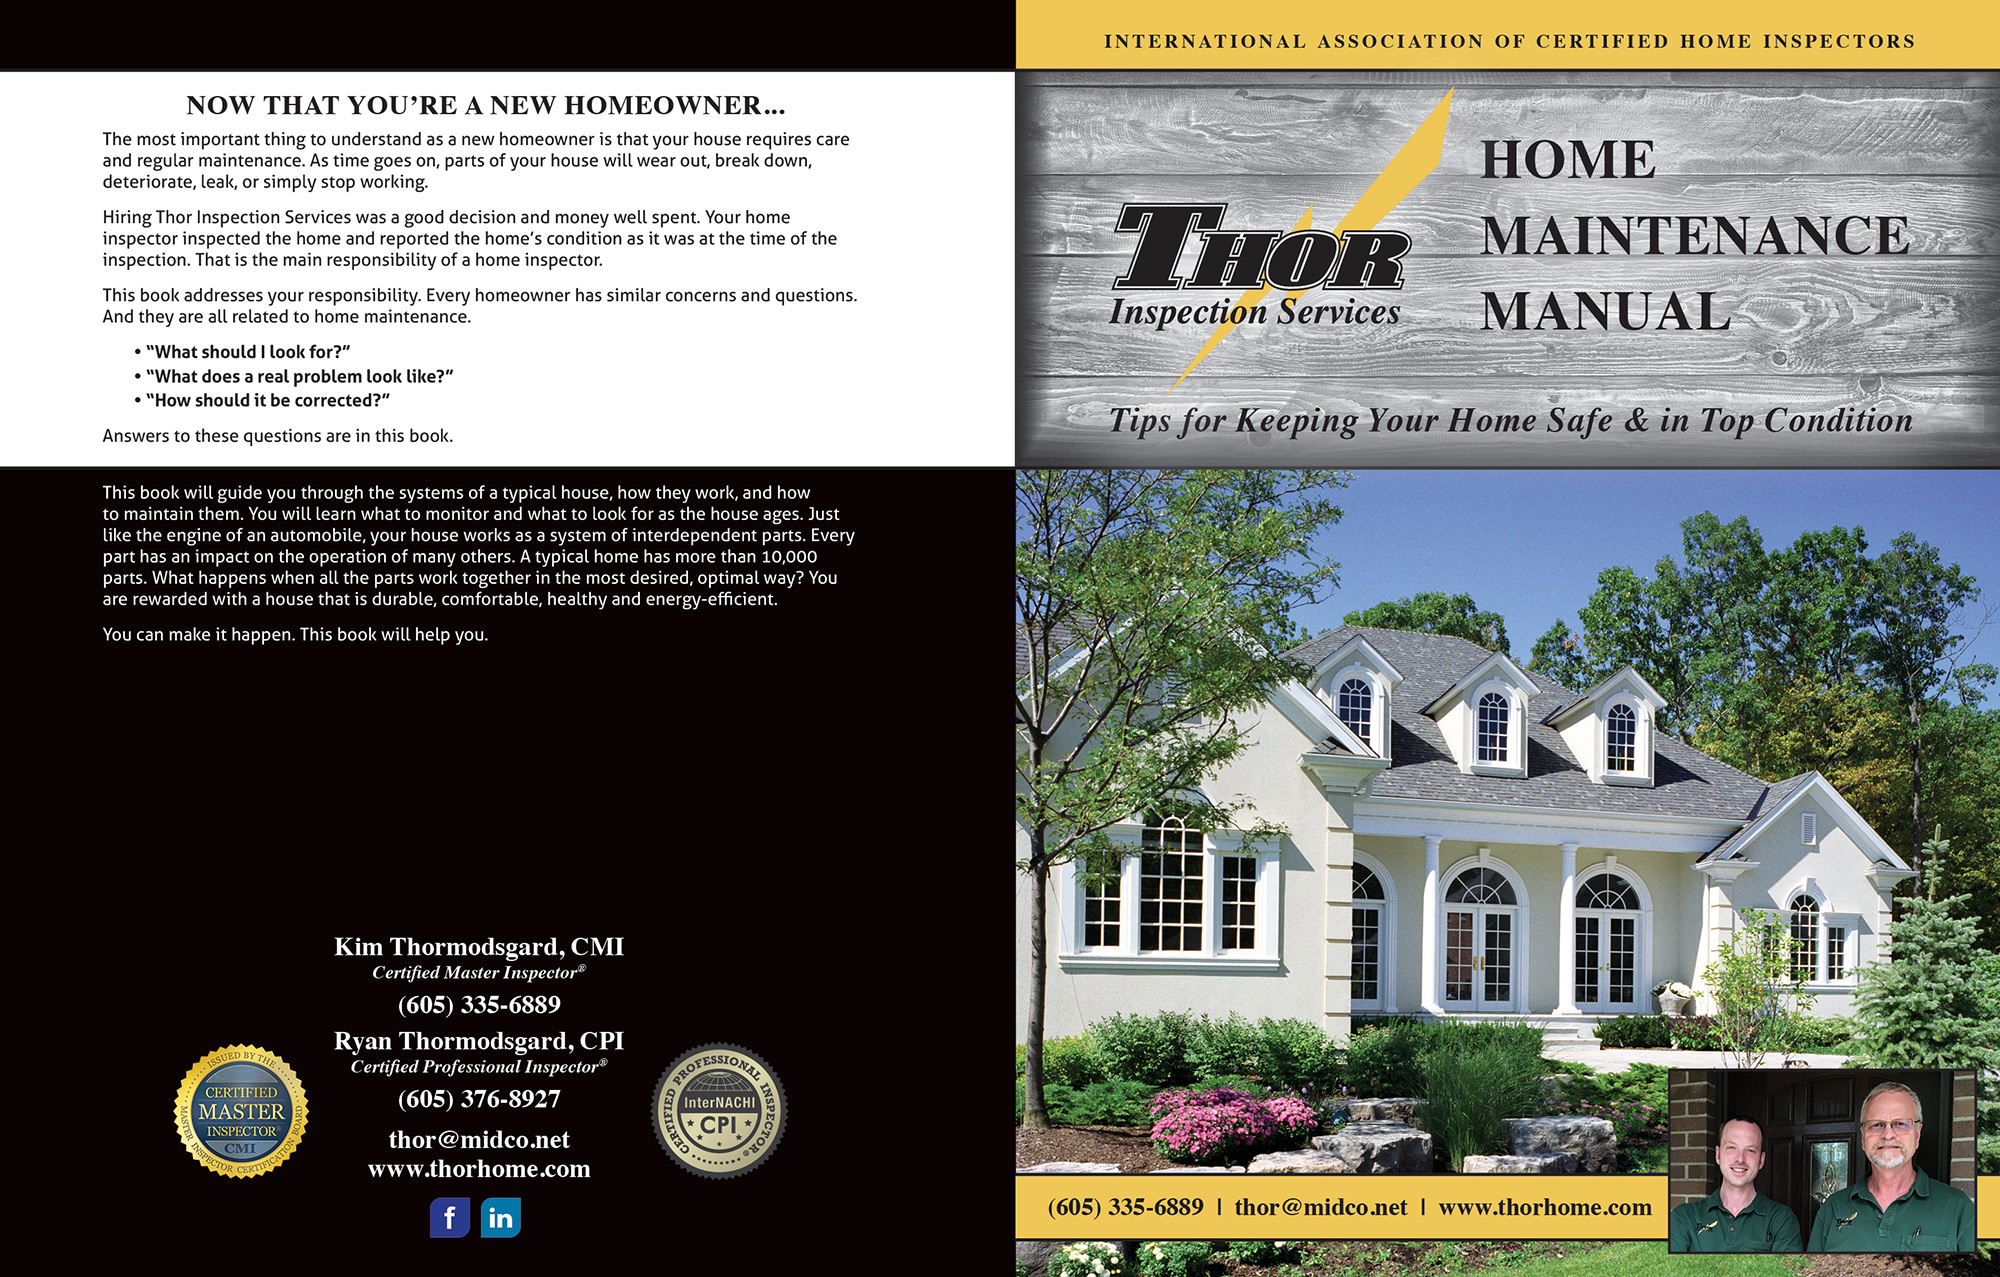 Custom Home Maintenance Book for Thor Inspection Services.